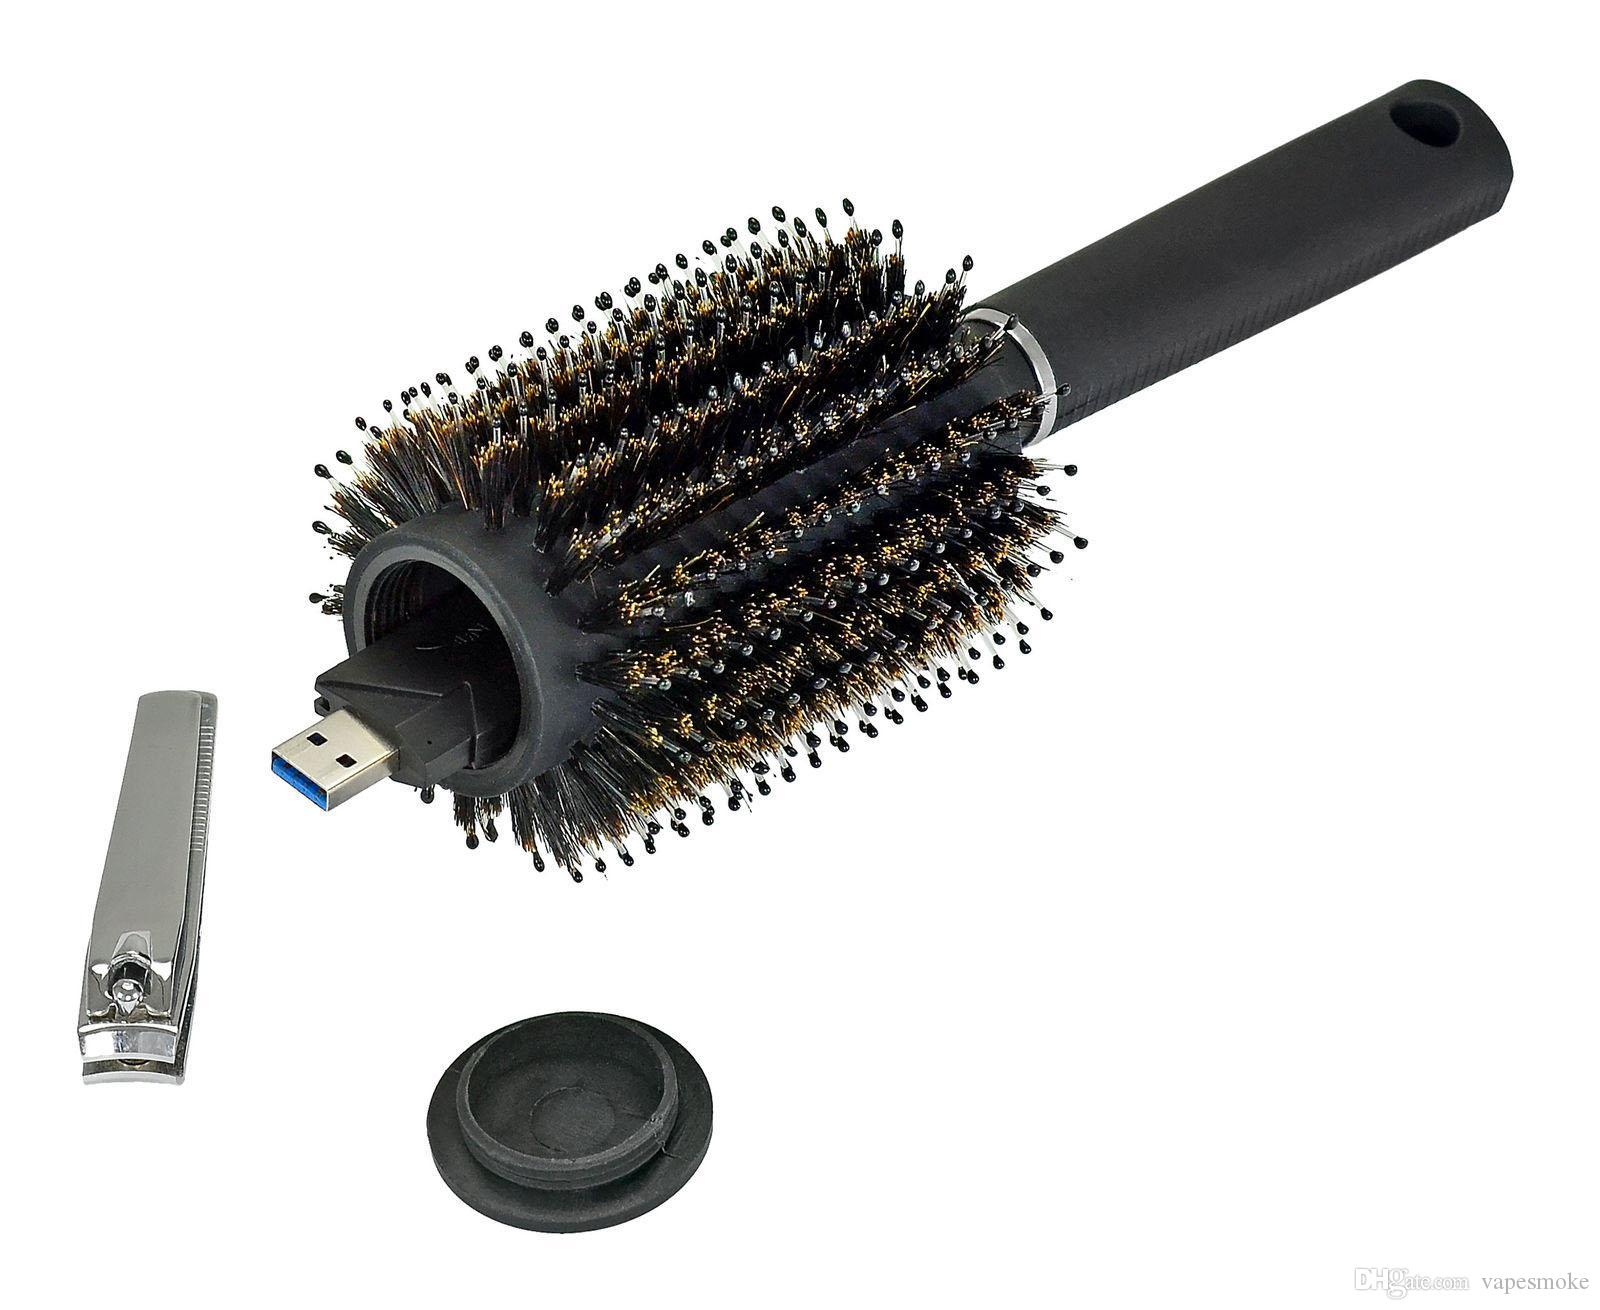 New hot Hair Brush Black Stash Safe Diversion Secret Security Hairbrush Hidden Valuables Hollow Container for Home Security Storage box